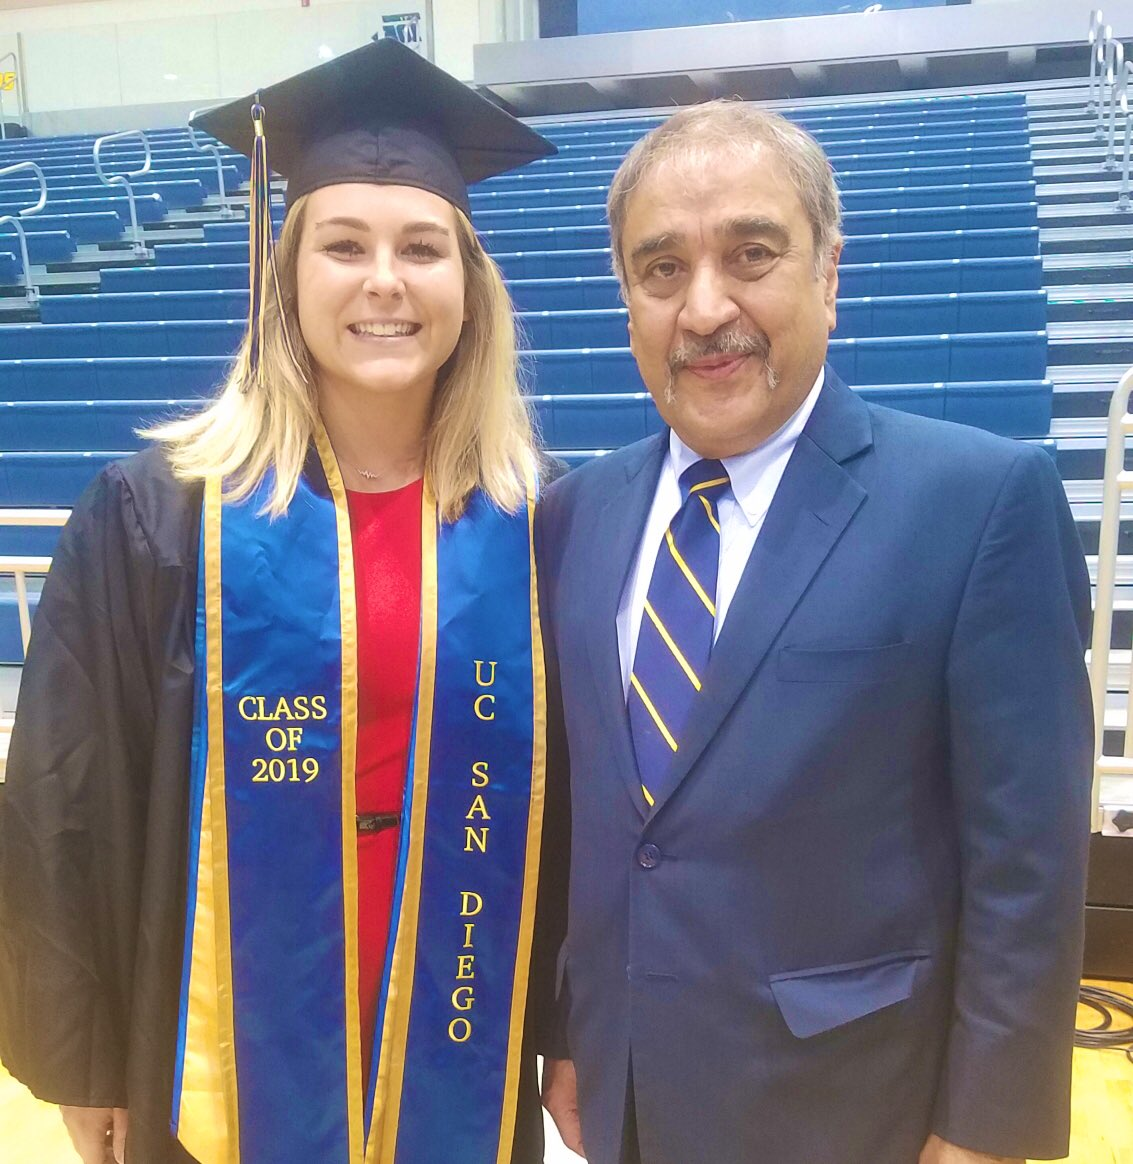 Behind the scenes prep with Chancellor Pradeep K. Khosla and this year's All Campus Commencement student speaker Michaela Jules #ucsd2019 #TritonGrad